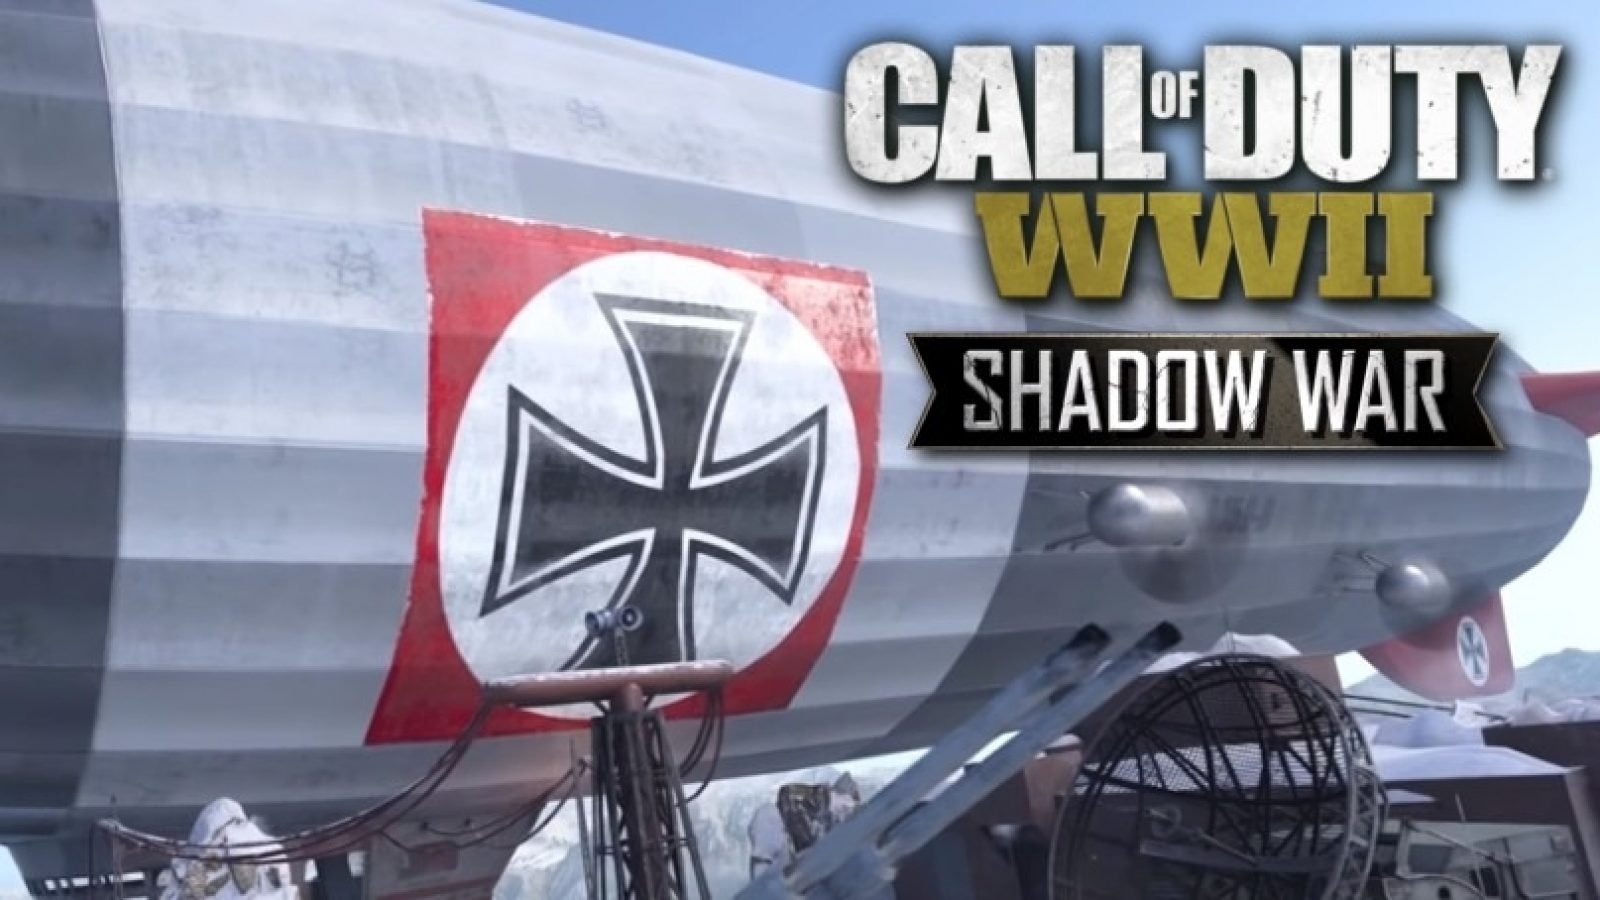 call-of-duty-wwii-shadow-war-dlc-pack-ya-disponible-frikigamers.com